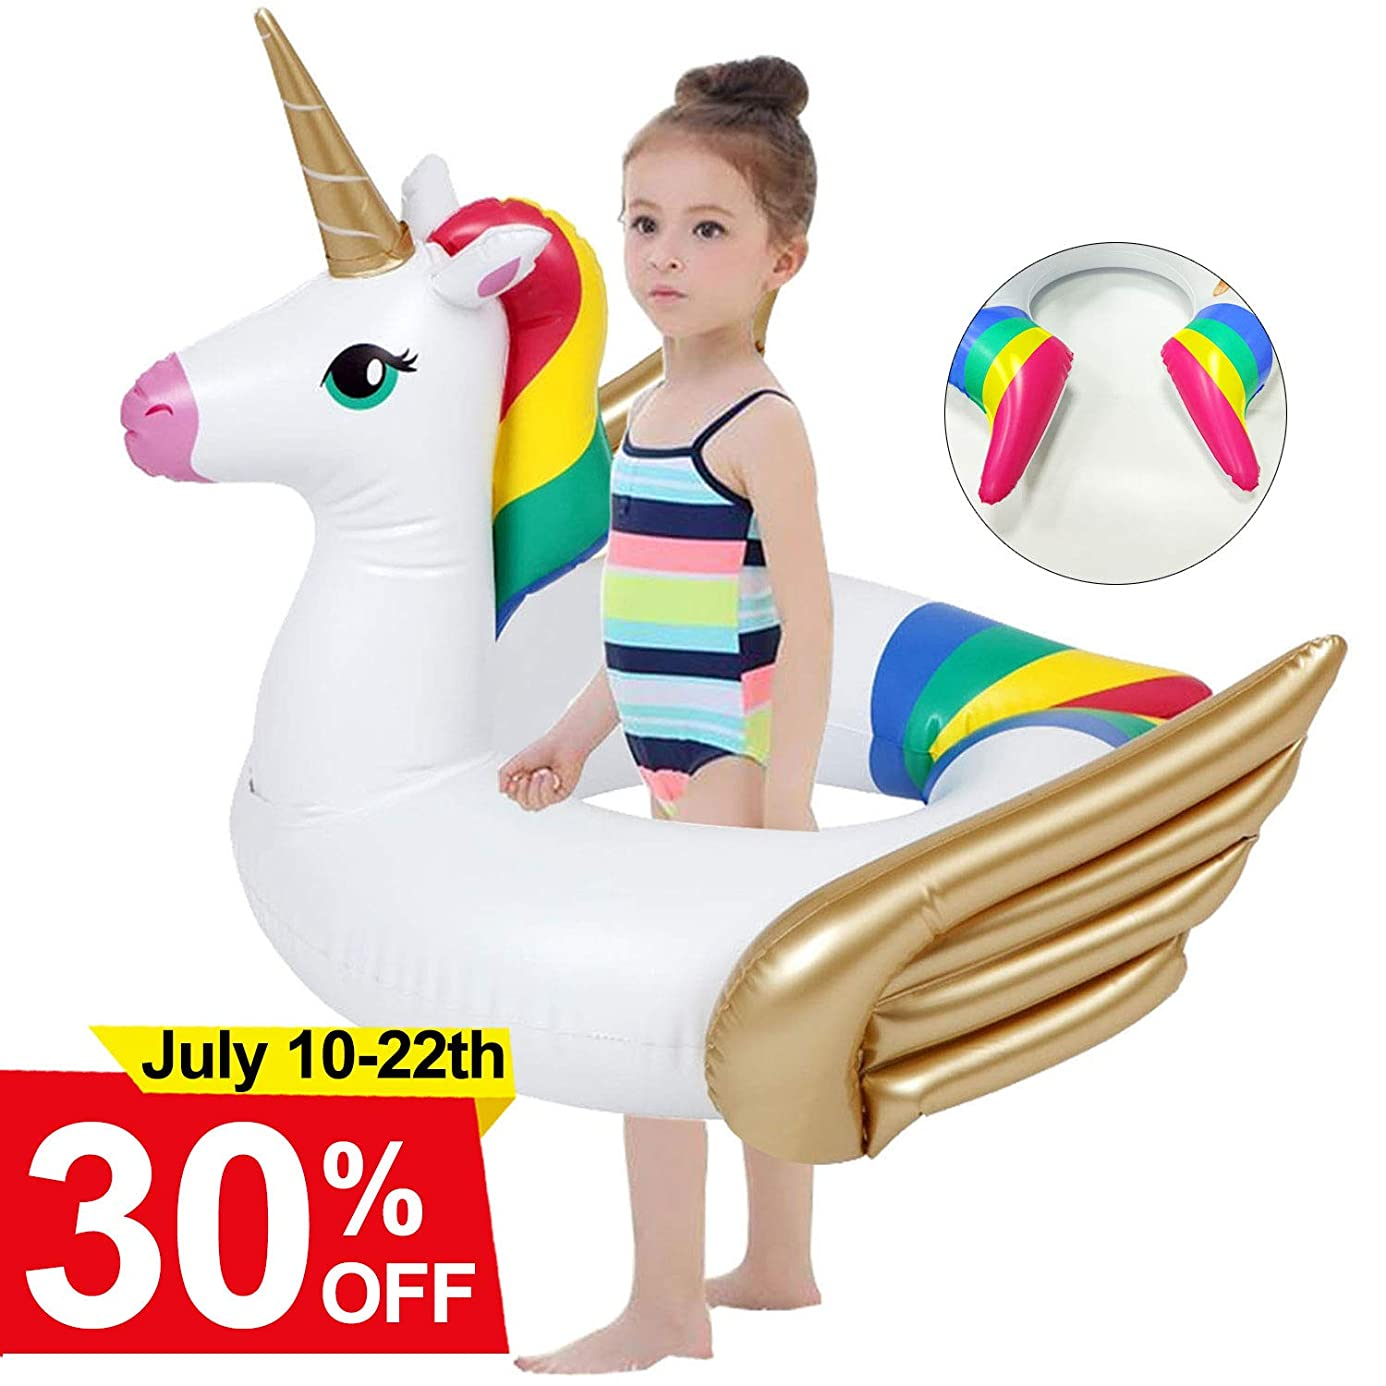 Unicorn Pool Float for Kids Swimming Floats for Toddlers Age 3.5-6 Years Inflatable Unicorn Floats for Pool for Girls Boys Summer Swimming Cute Kids Floaties ruw2590160